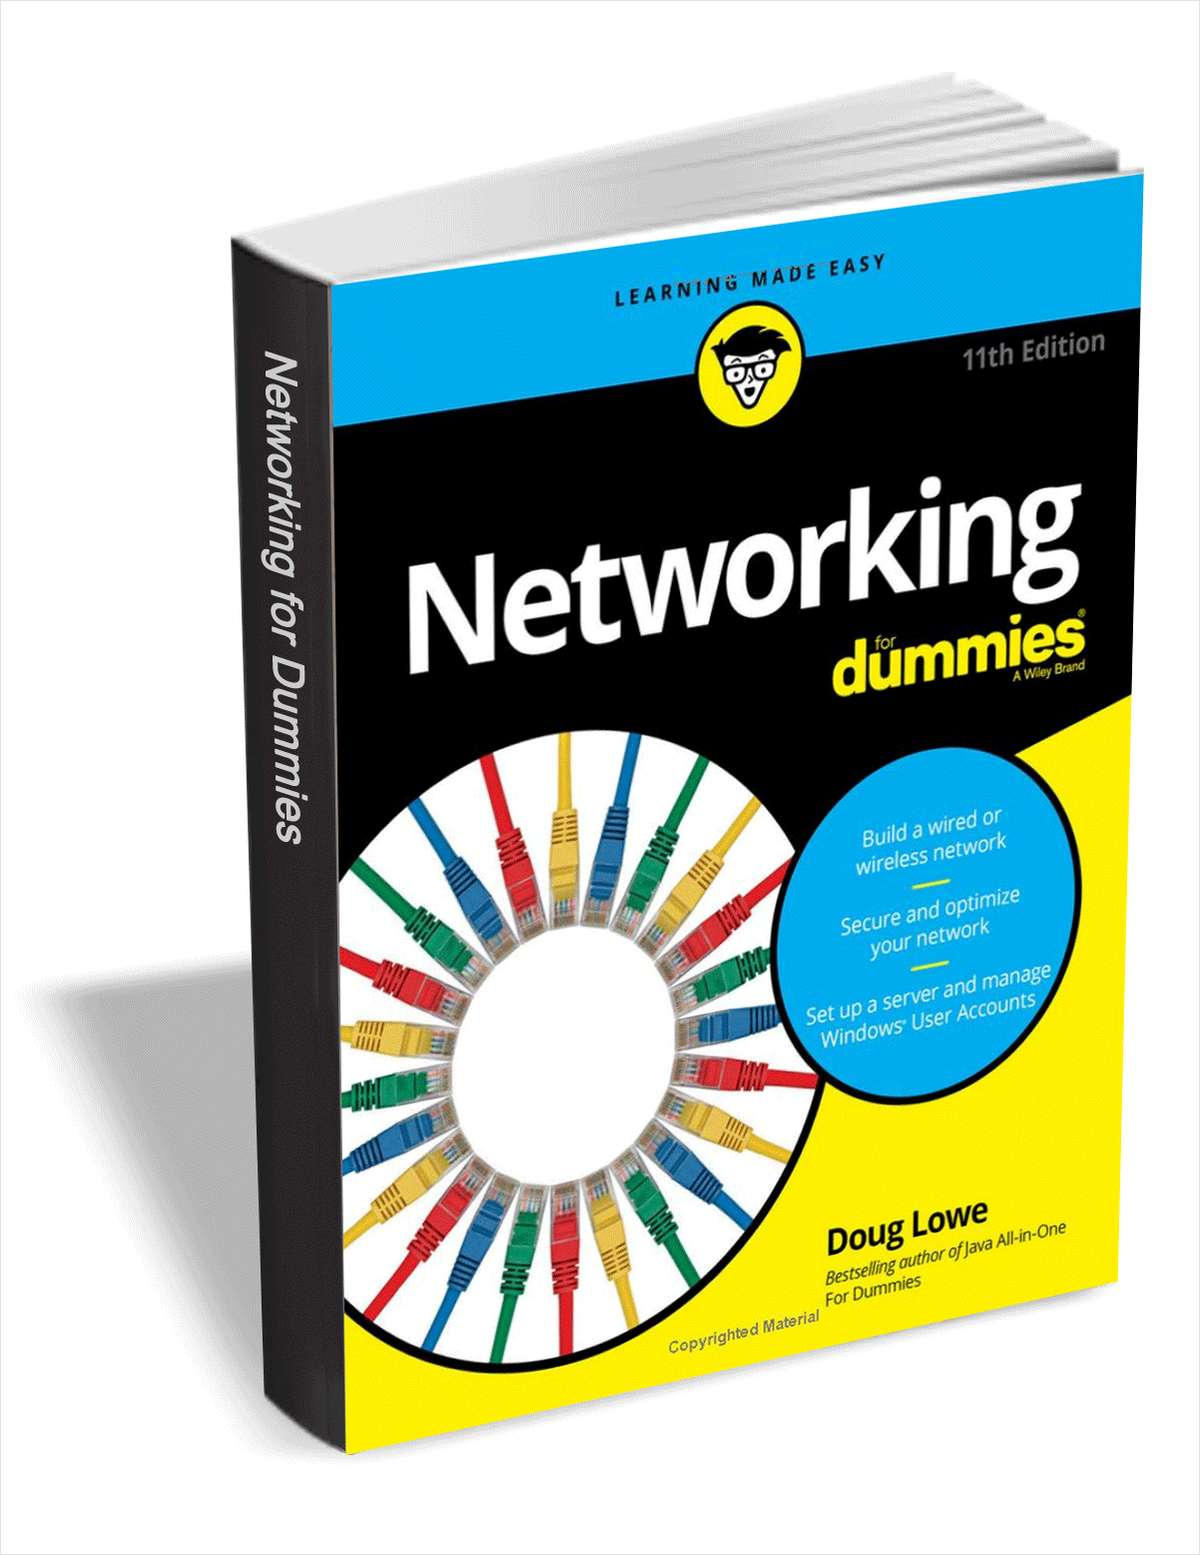 Networking For Dummies, 11th Edition ($15.99 Value) FREE For a Limited Time